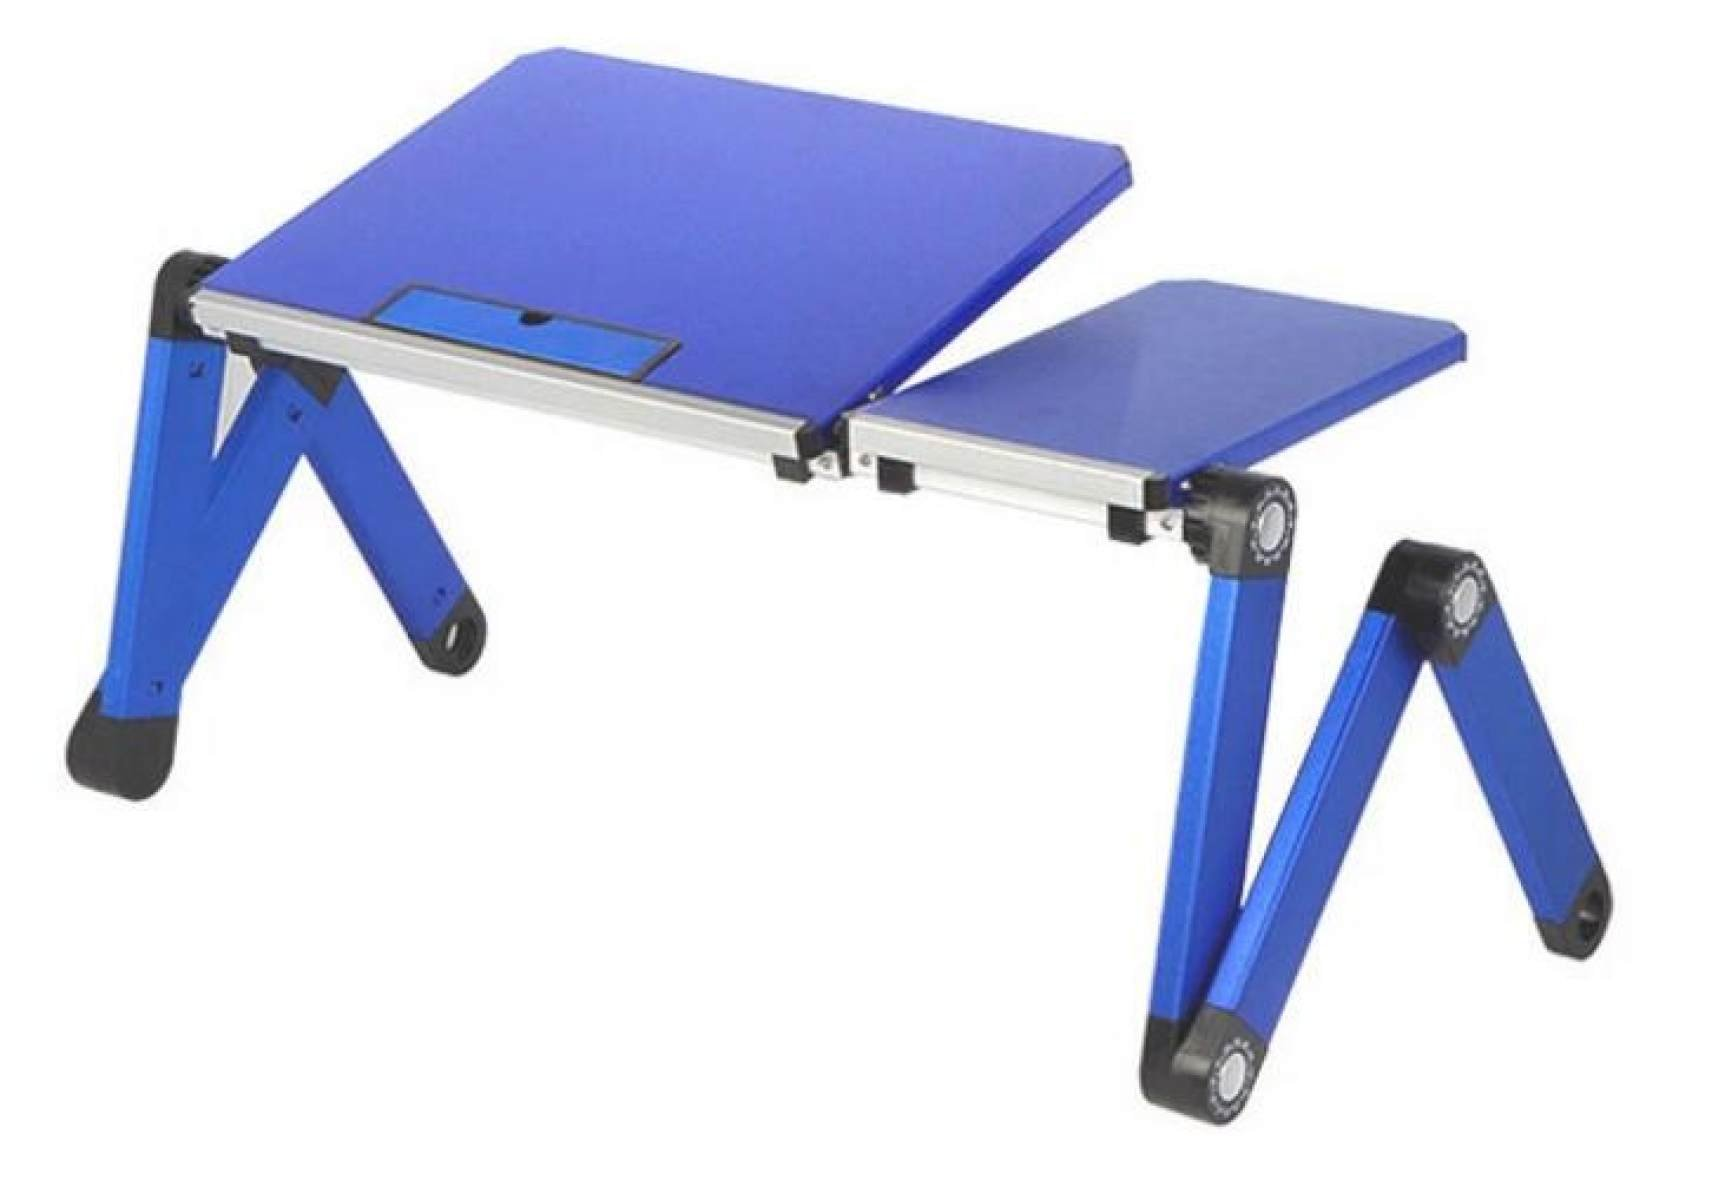 Bed Laptop Table Aluminum Desk Writing Job Hit Game Folding Camping Table,Blue-OneSize